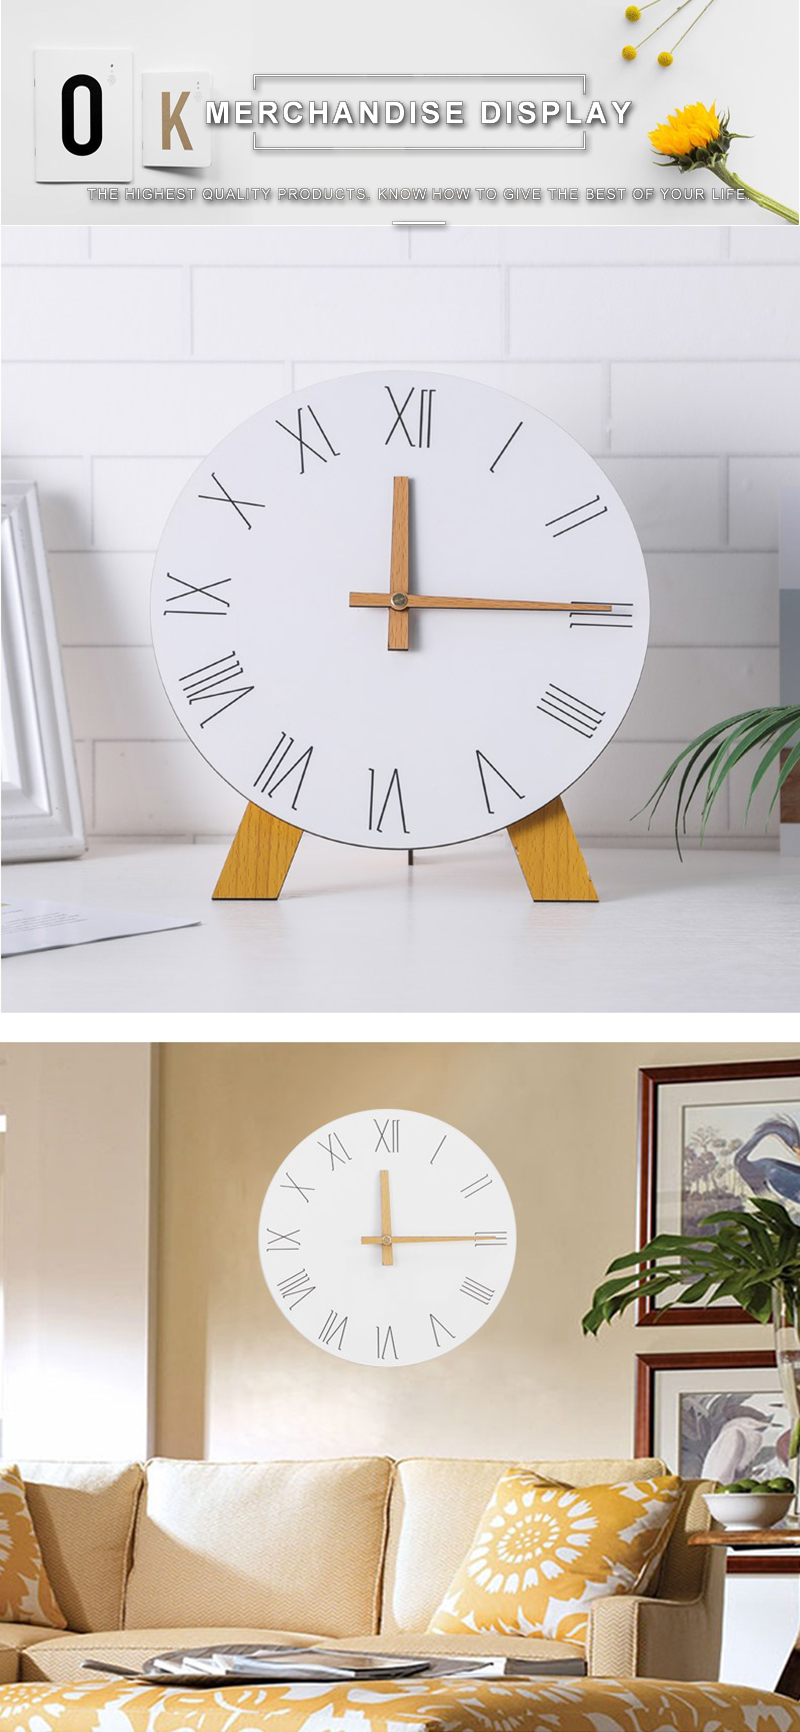 study clock watch office office table decoration flip calendar bamboo clock desk clock circular electronic desktop clock dementia clock (5)